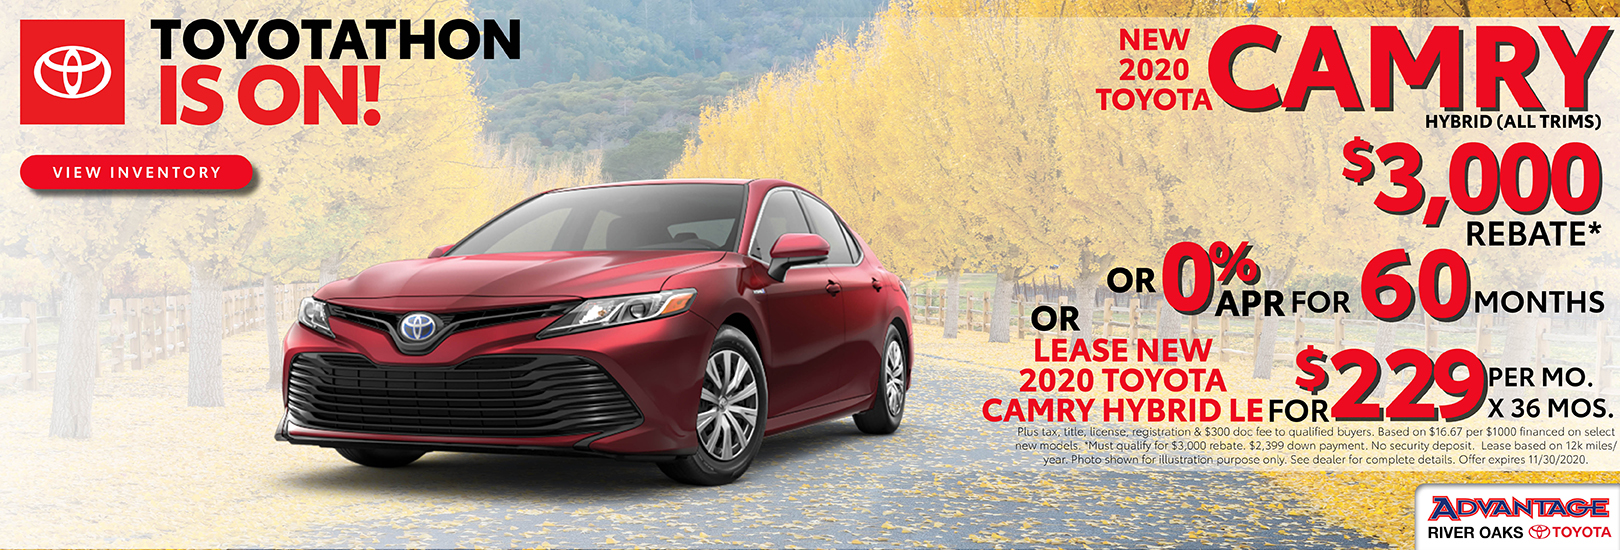 2020 Toyota Camry Hybrid Finance or Lease Offer| Calumet City, IL